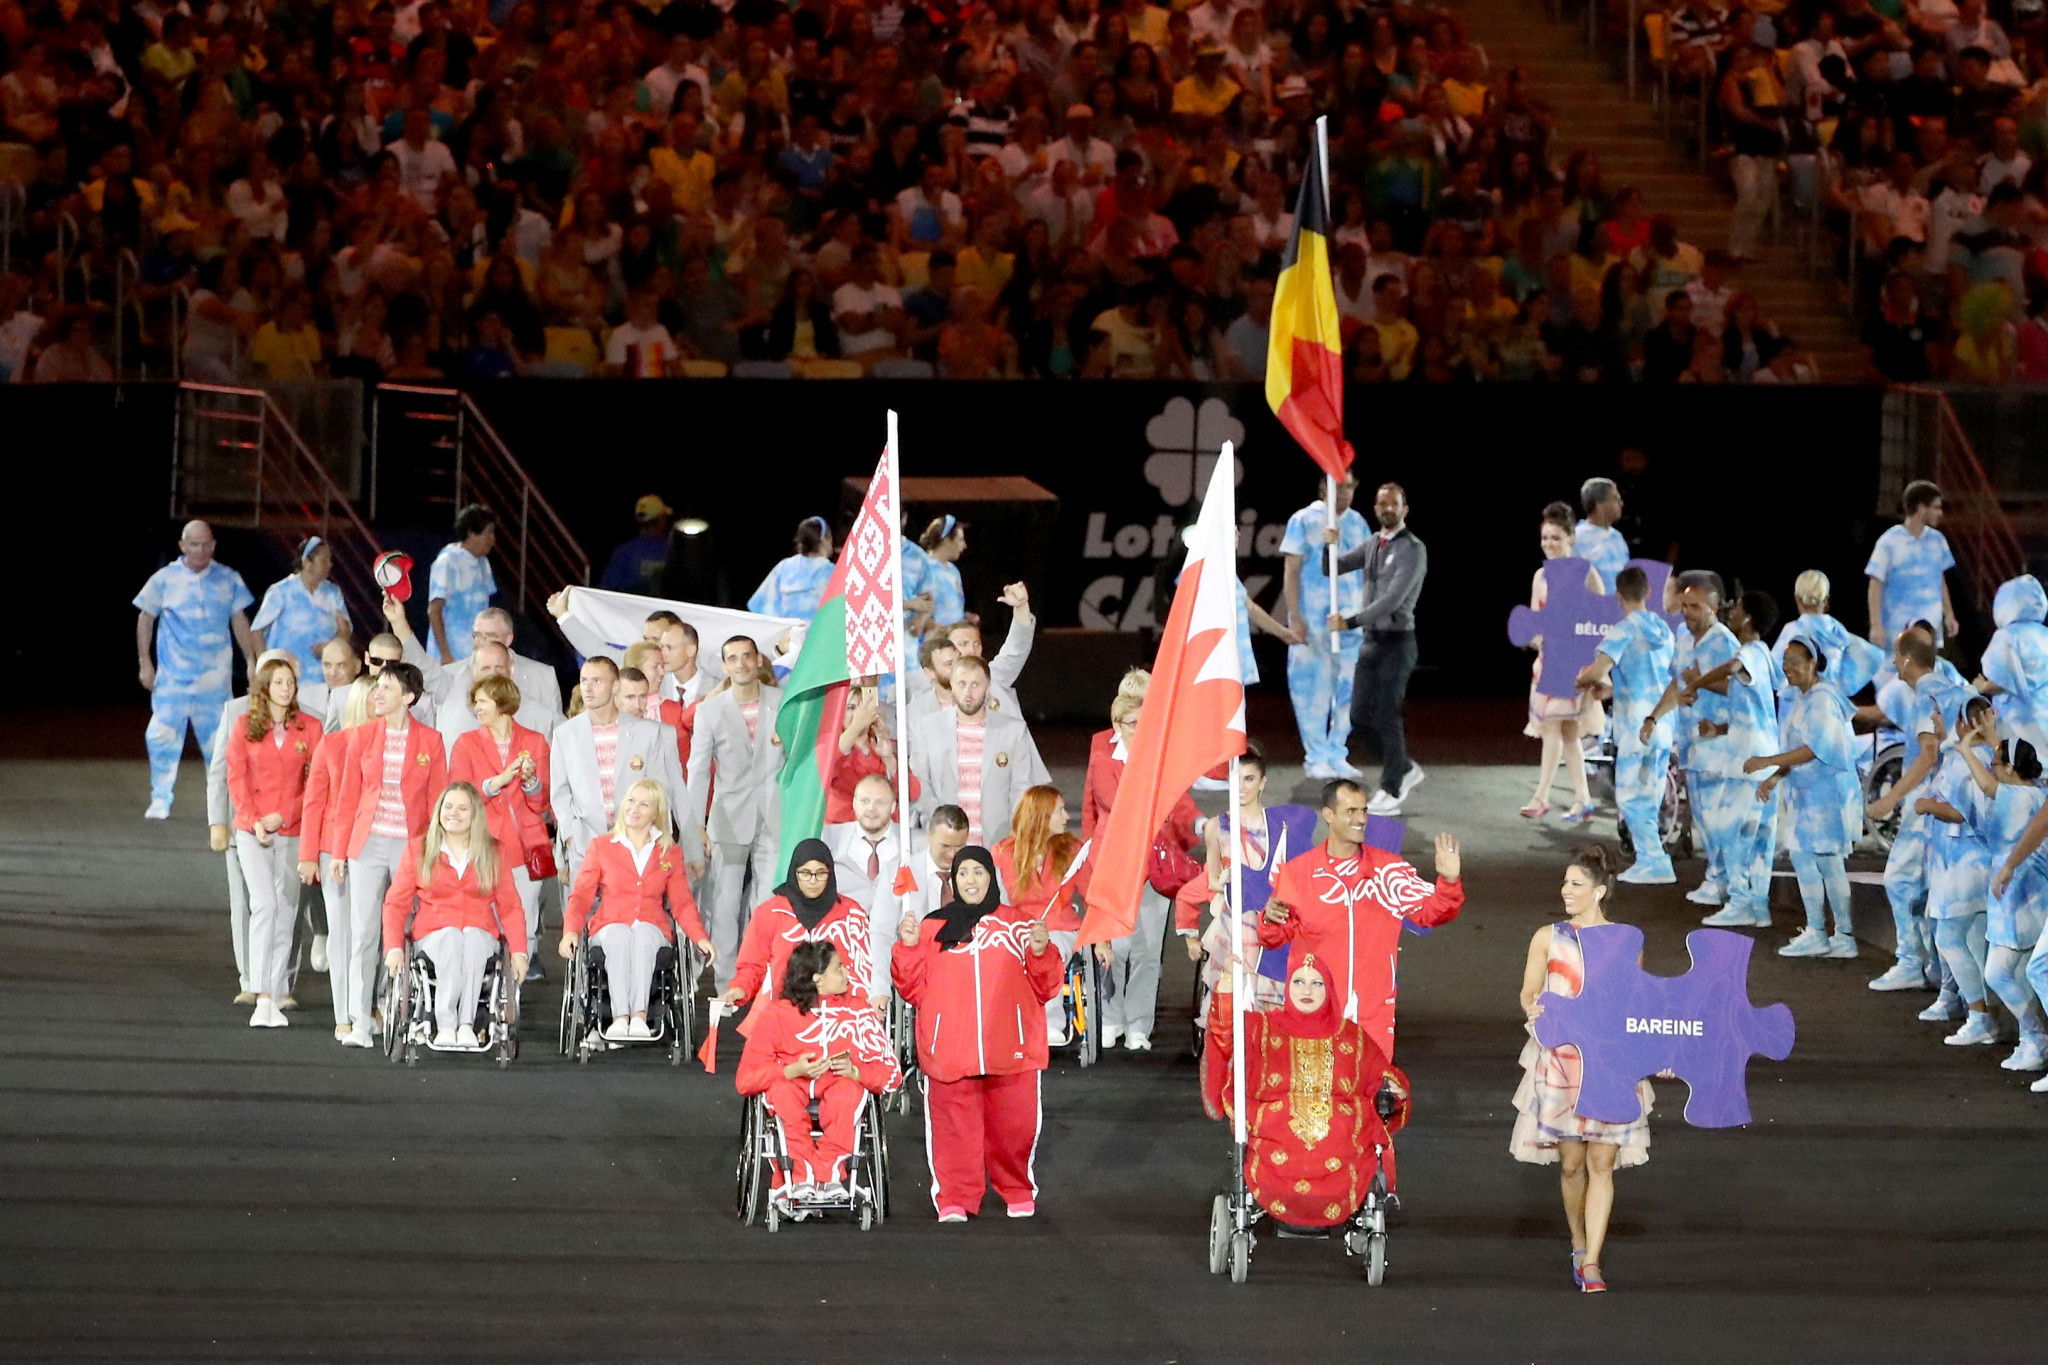 Bahrain Paralympic Committee signs accord with UN over sustainable development